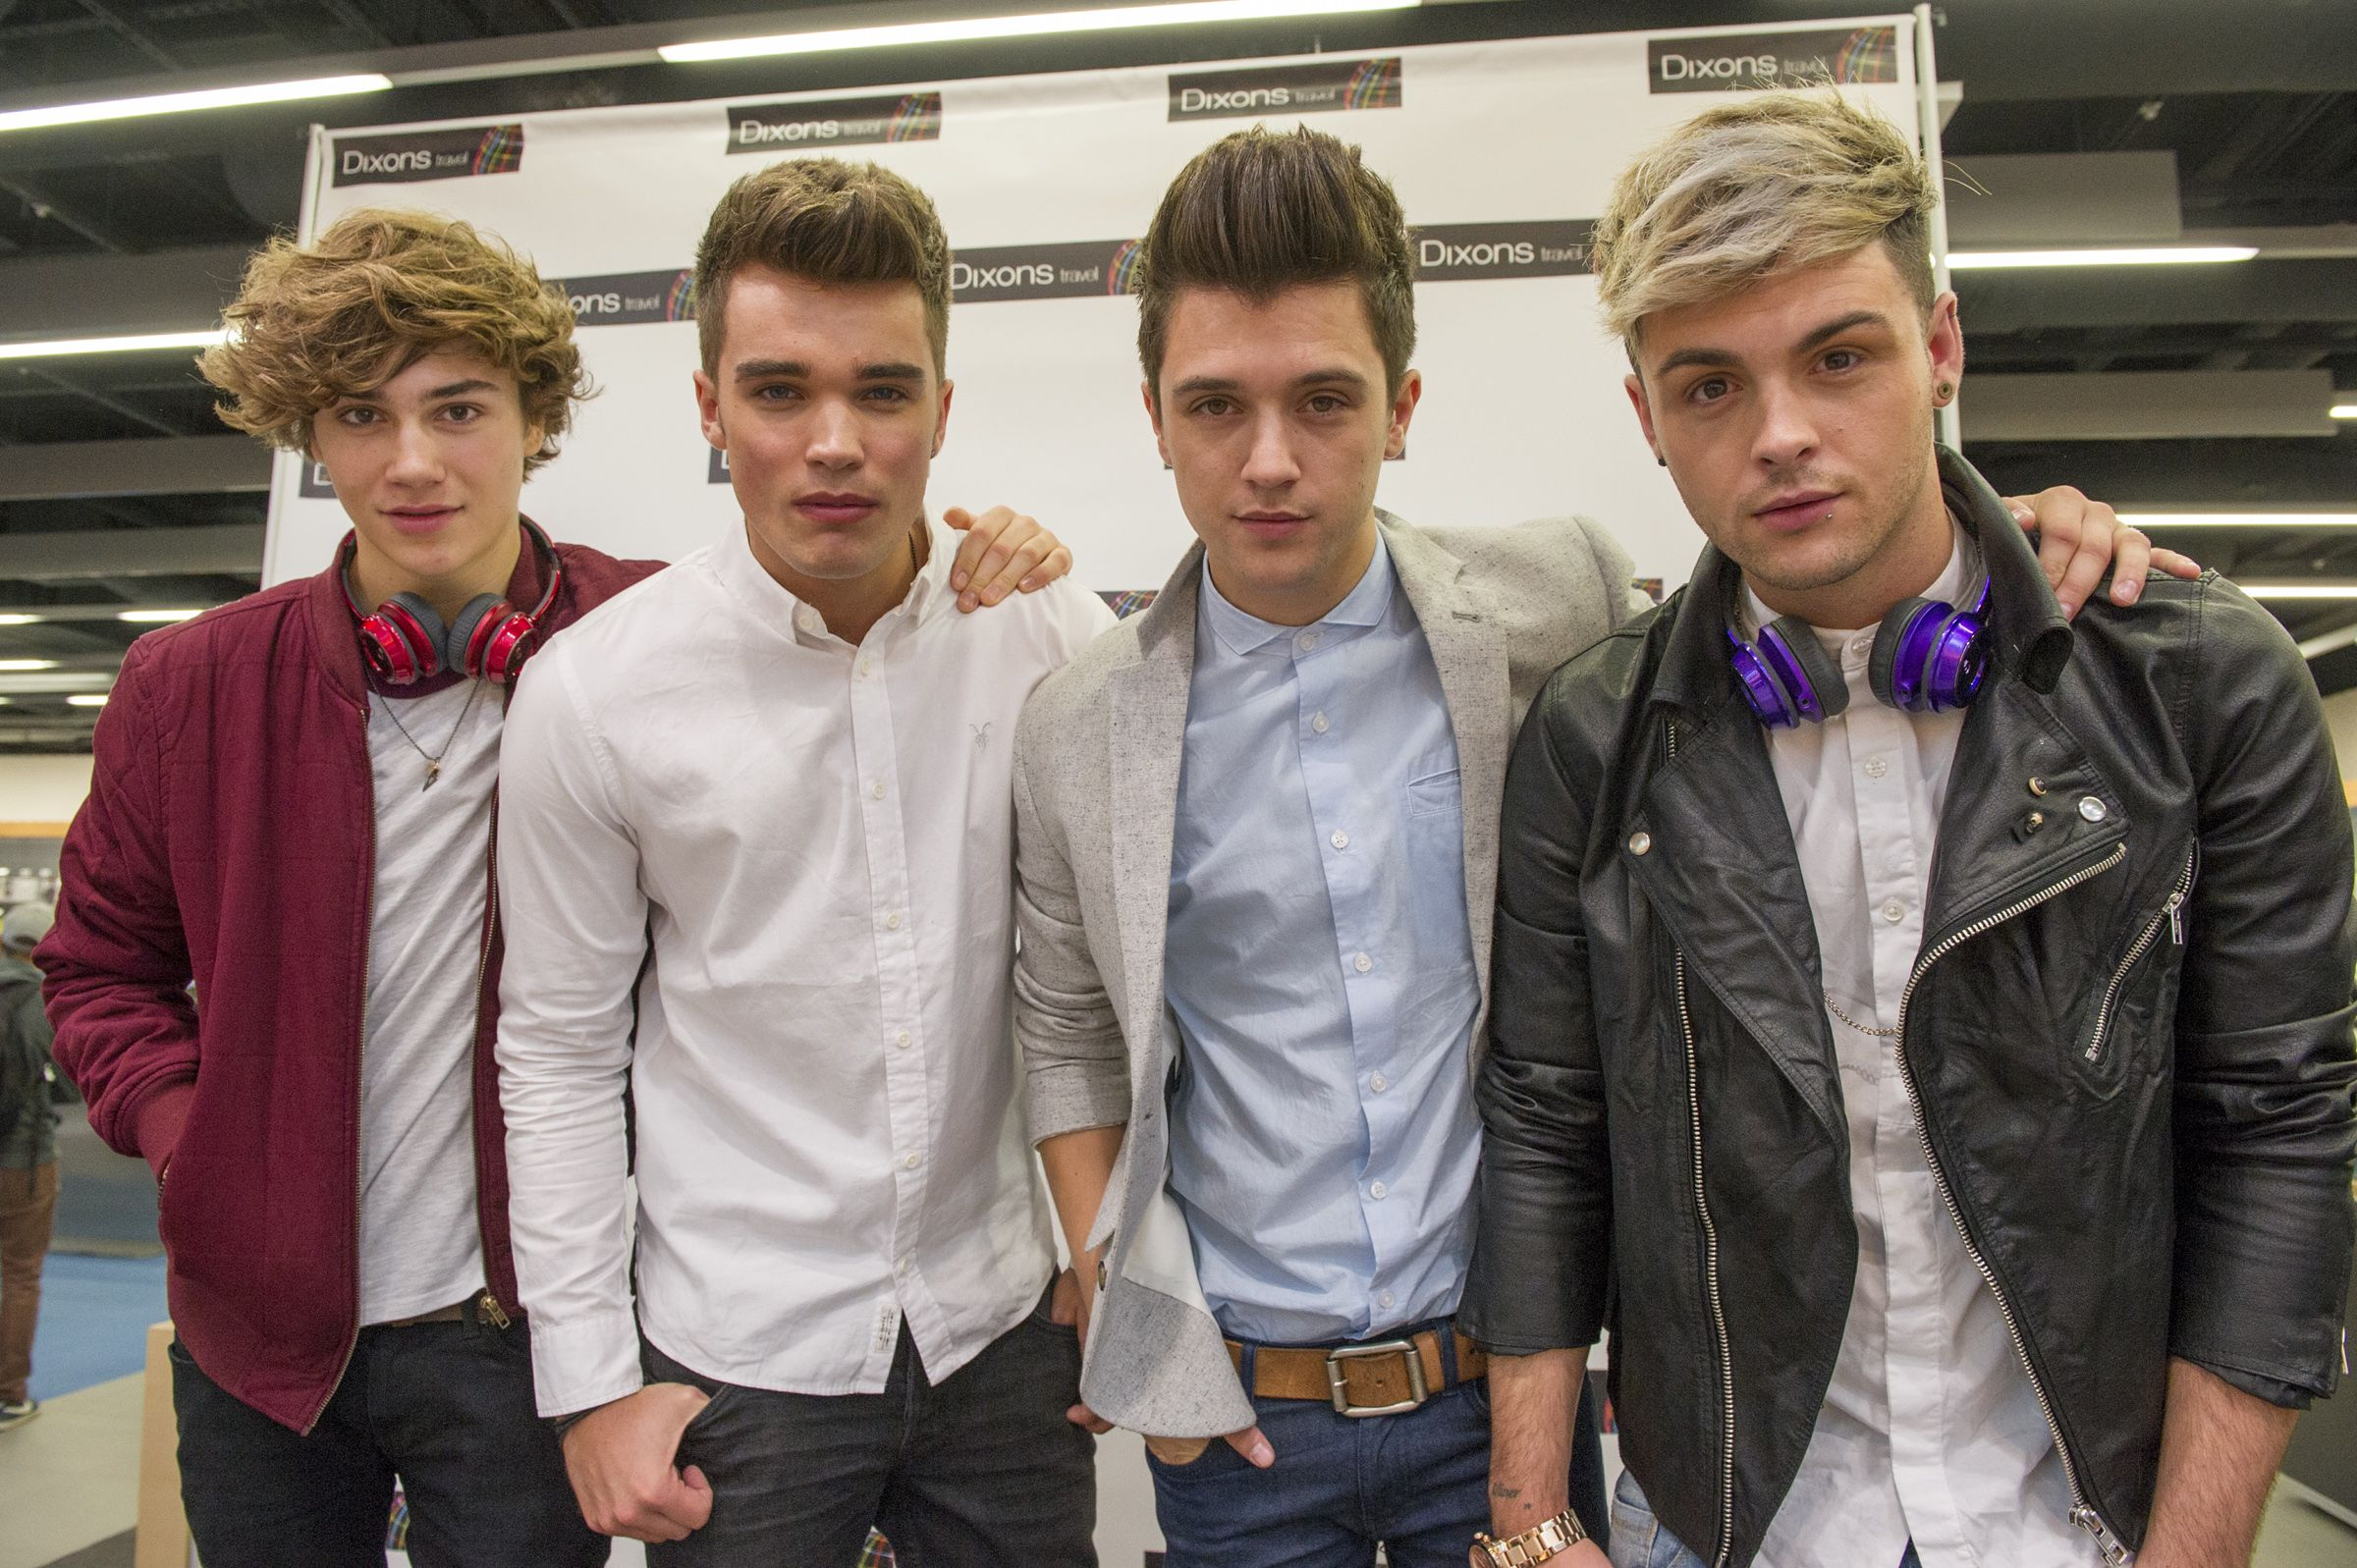 Union j launched the new concept store for dixons travel at union j launched the new concept store for dixons travel at heathrow airport t5 on 29th kristyandbryce Image collections